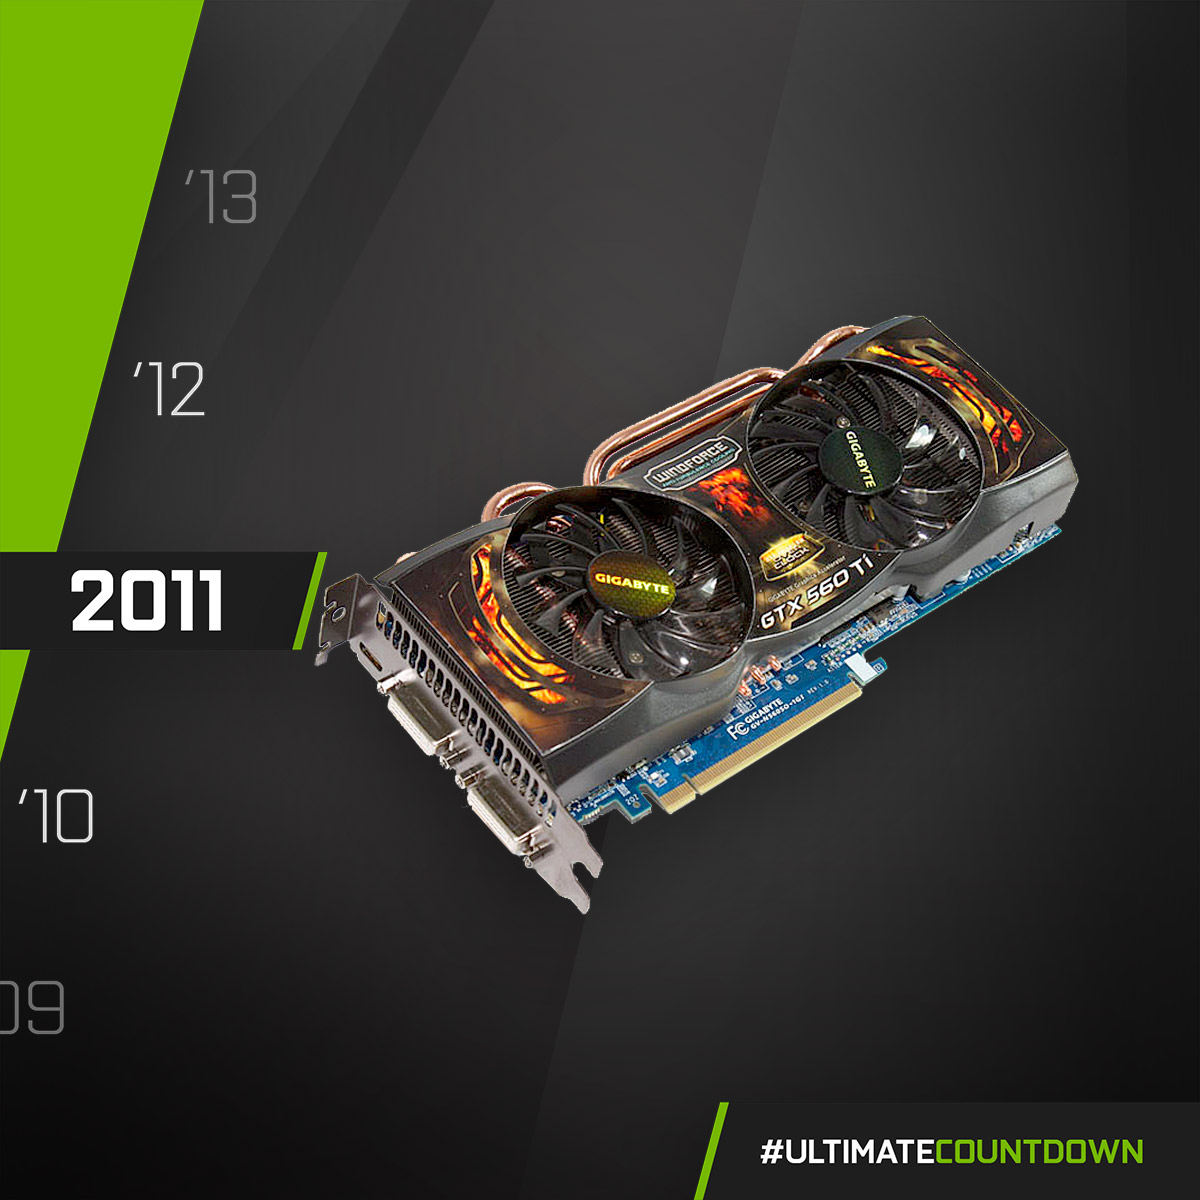 NVIDIA GeForce GTX 560 Ti - 2011  Looking back at the GIGABYTE GTX 560 Ti SOC, with the best performance and thermal design of the year, and also a retro rock style look!  #UltimateCountdown #UltimateAORUS #GIGABYTE https://t.co/1eBN3n71b9